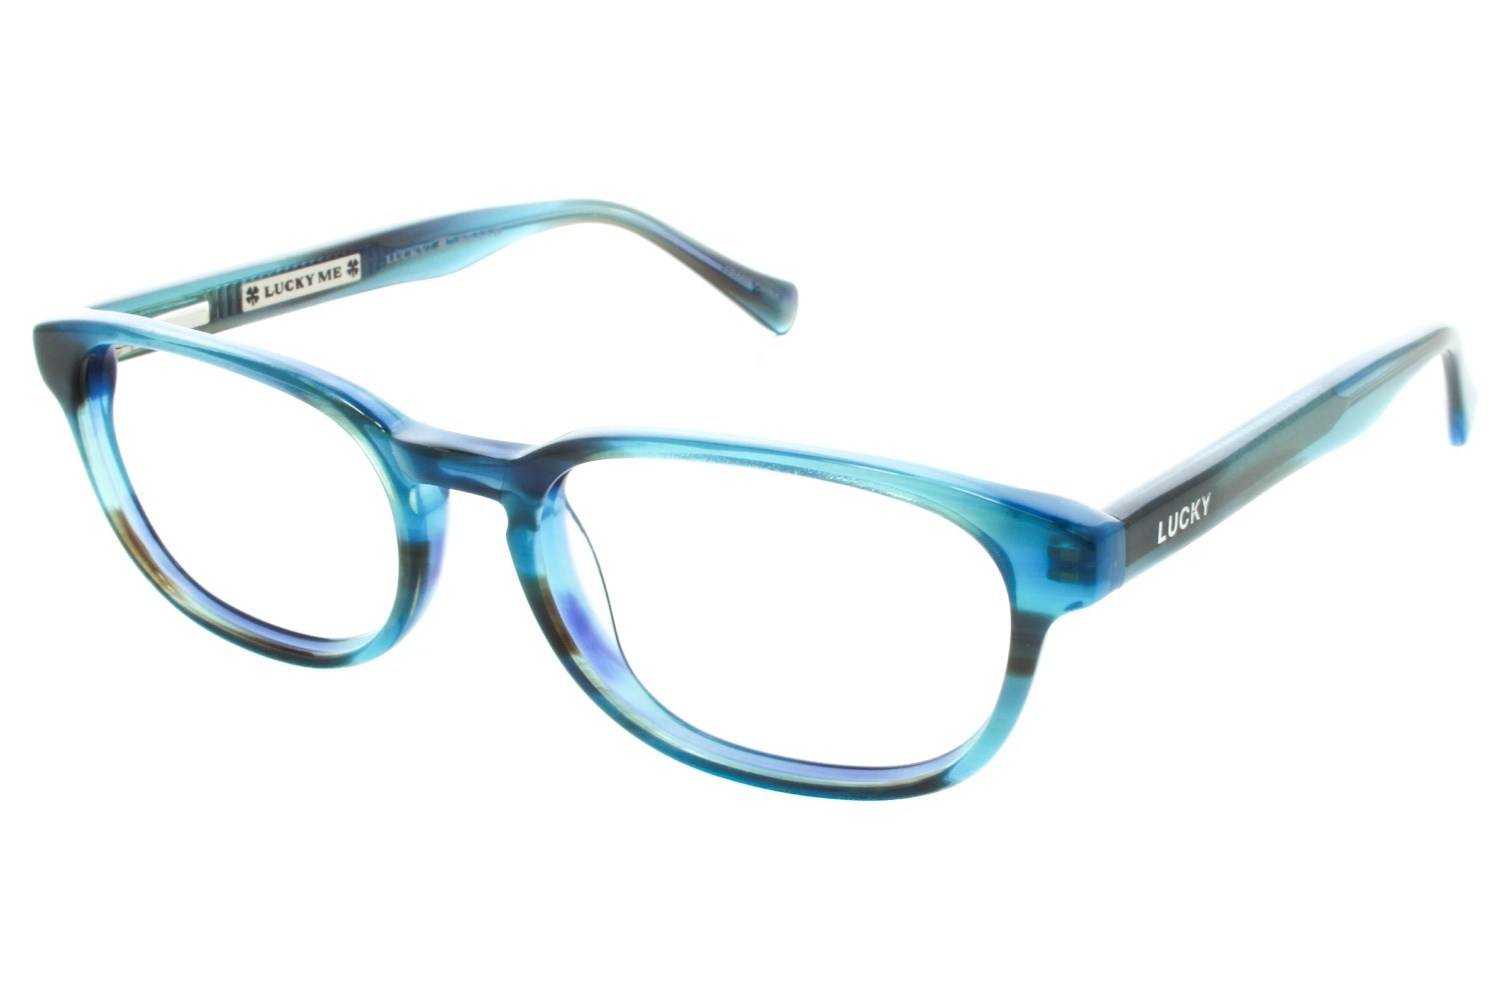 Lucky Dynamo Prescription Eyeglasses Frames